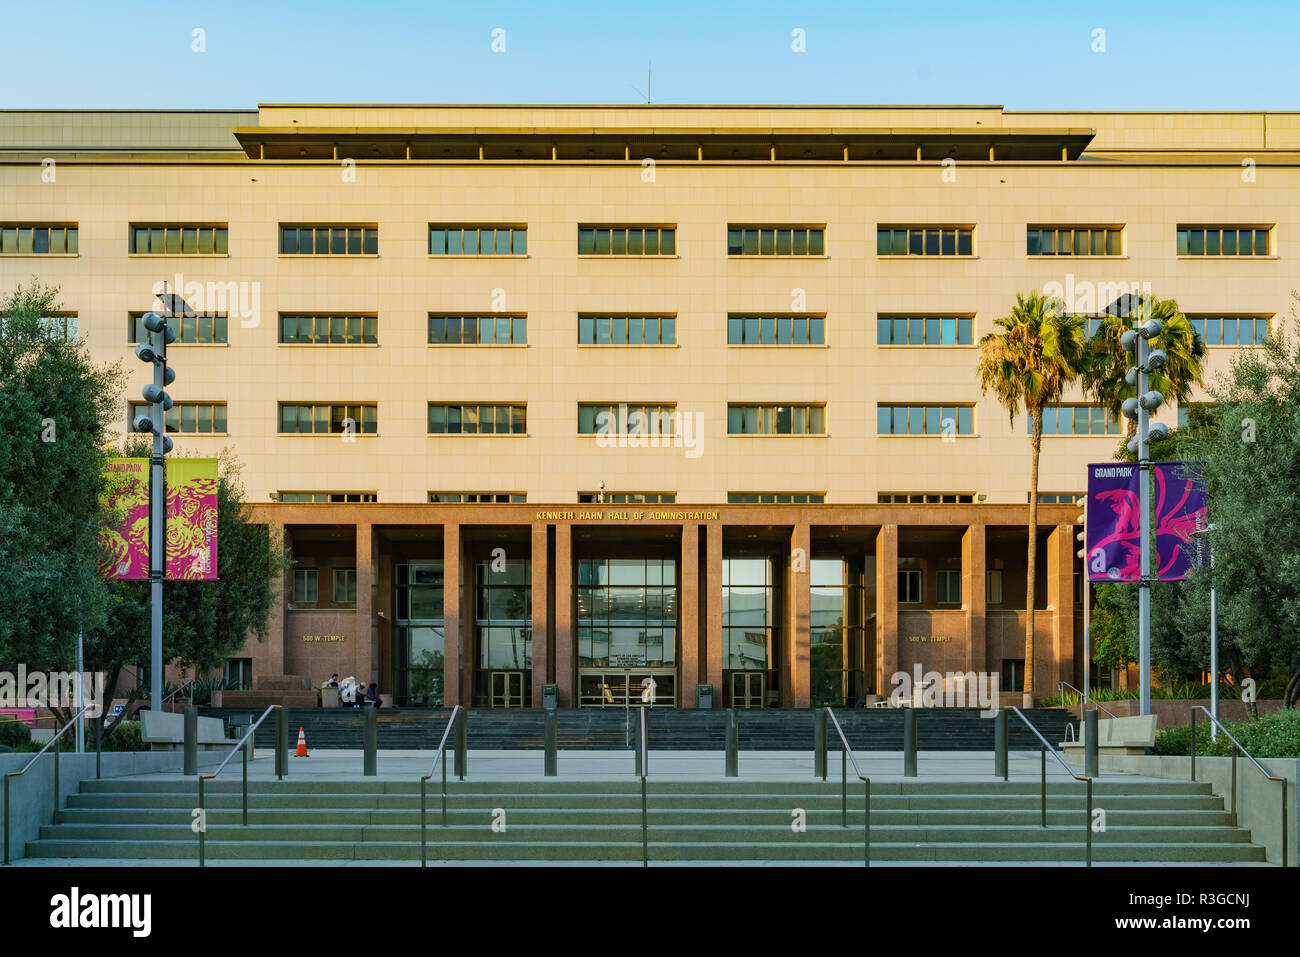 Los Angeles, AUG 2: Exterior view of the L A County Auditor Controller on AUG 2, 2018 at Los Angeles - Stock Image